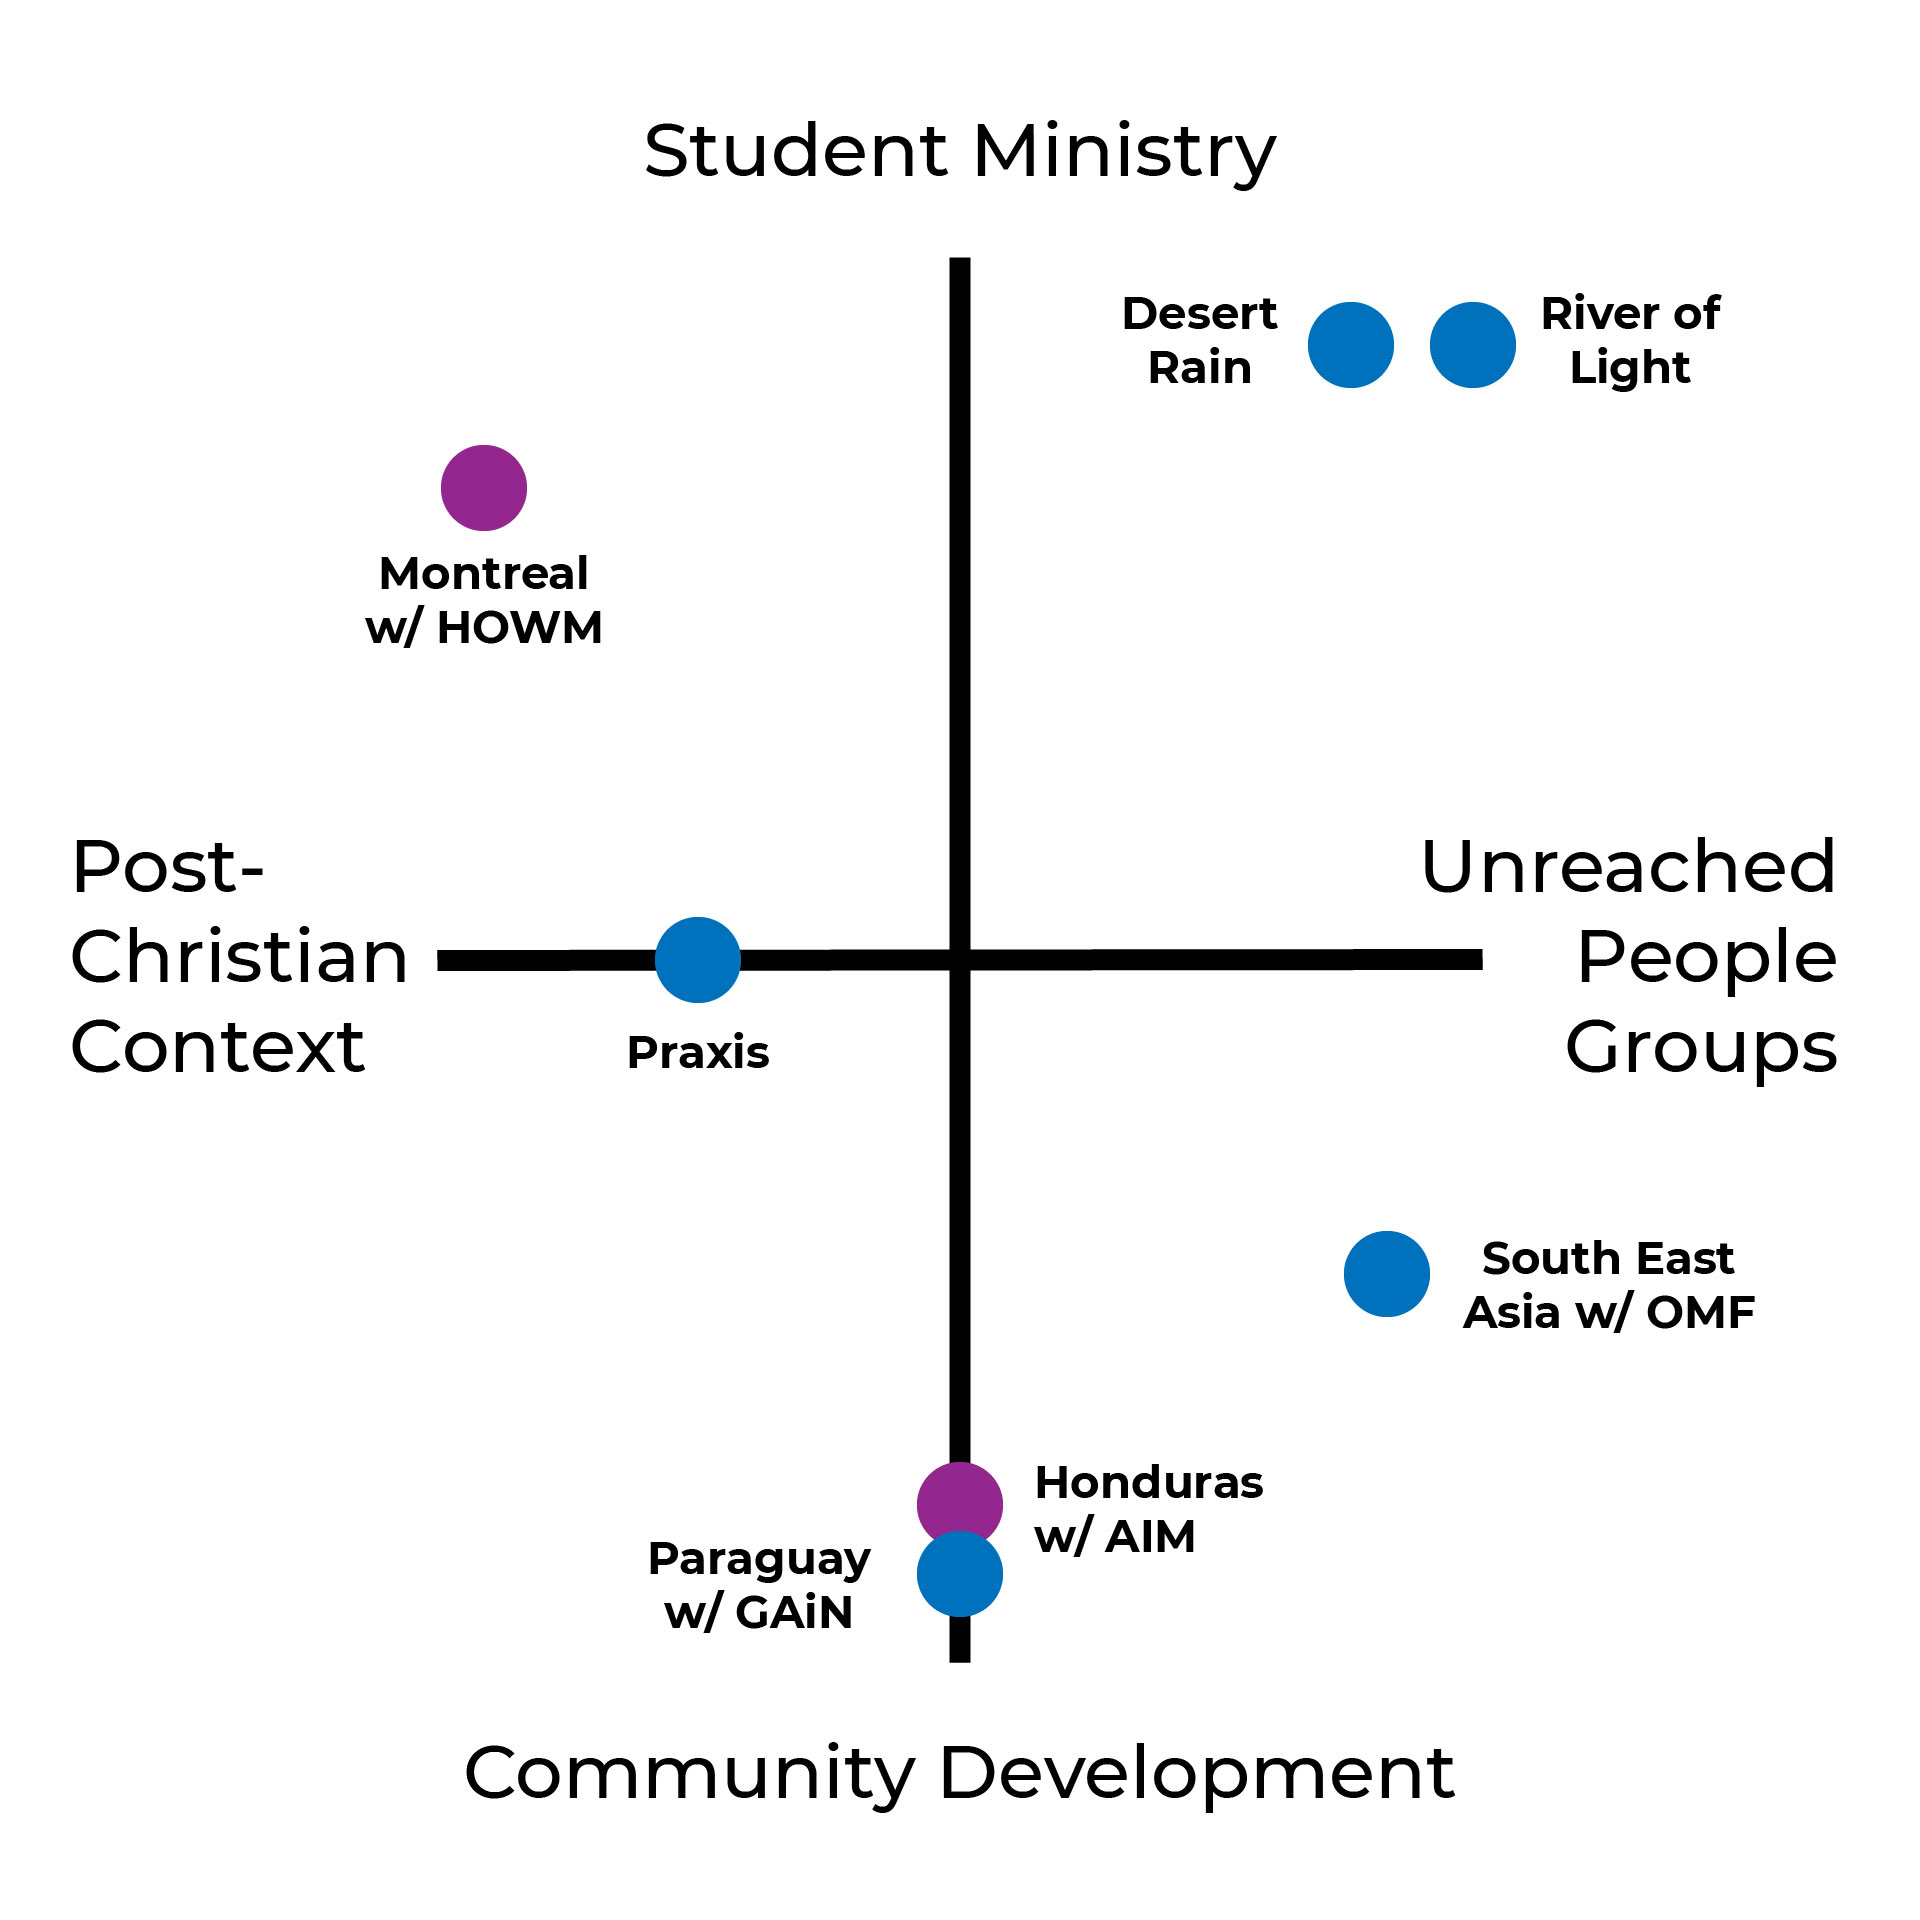 2D plot comparing the qualities of each mission trip